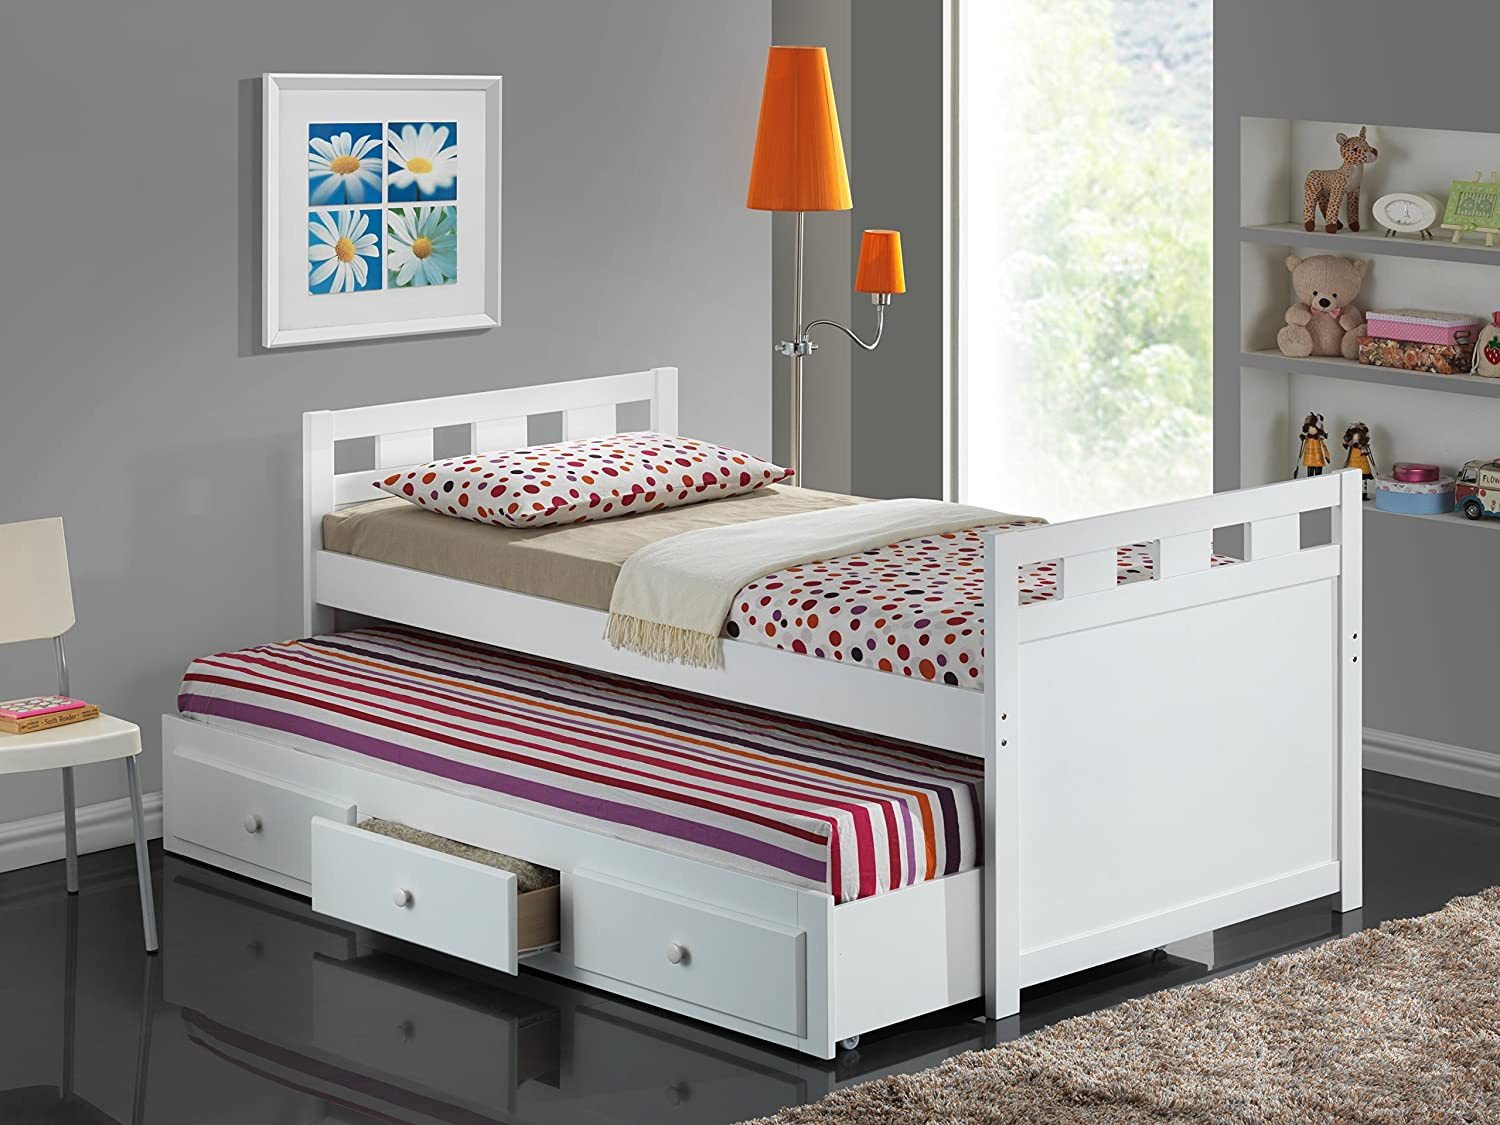 Amazon Com Broyhill Kids Breckenridge Captains Bed With Trundle Bed And Drawers White Kitchen Dining